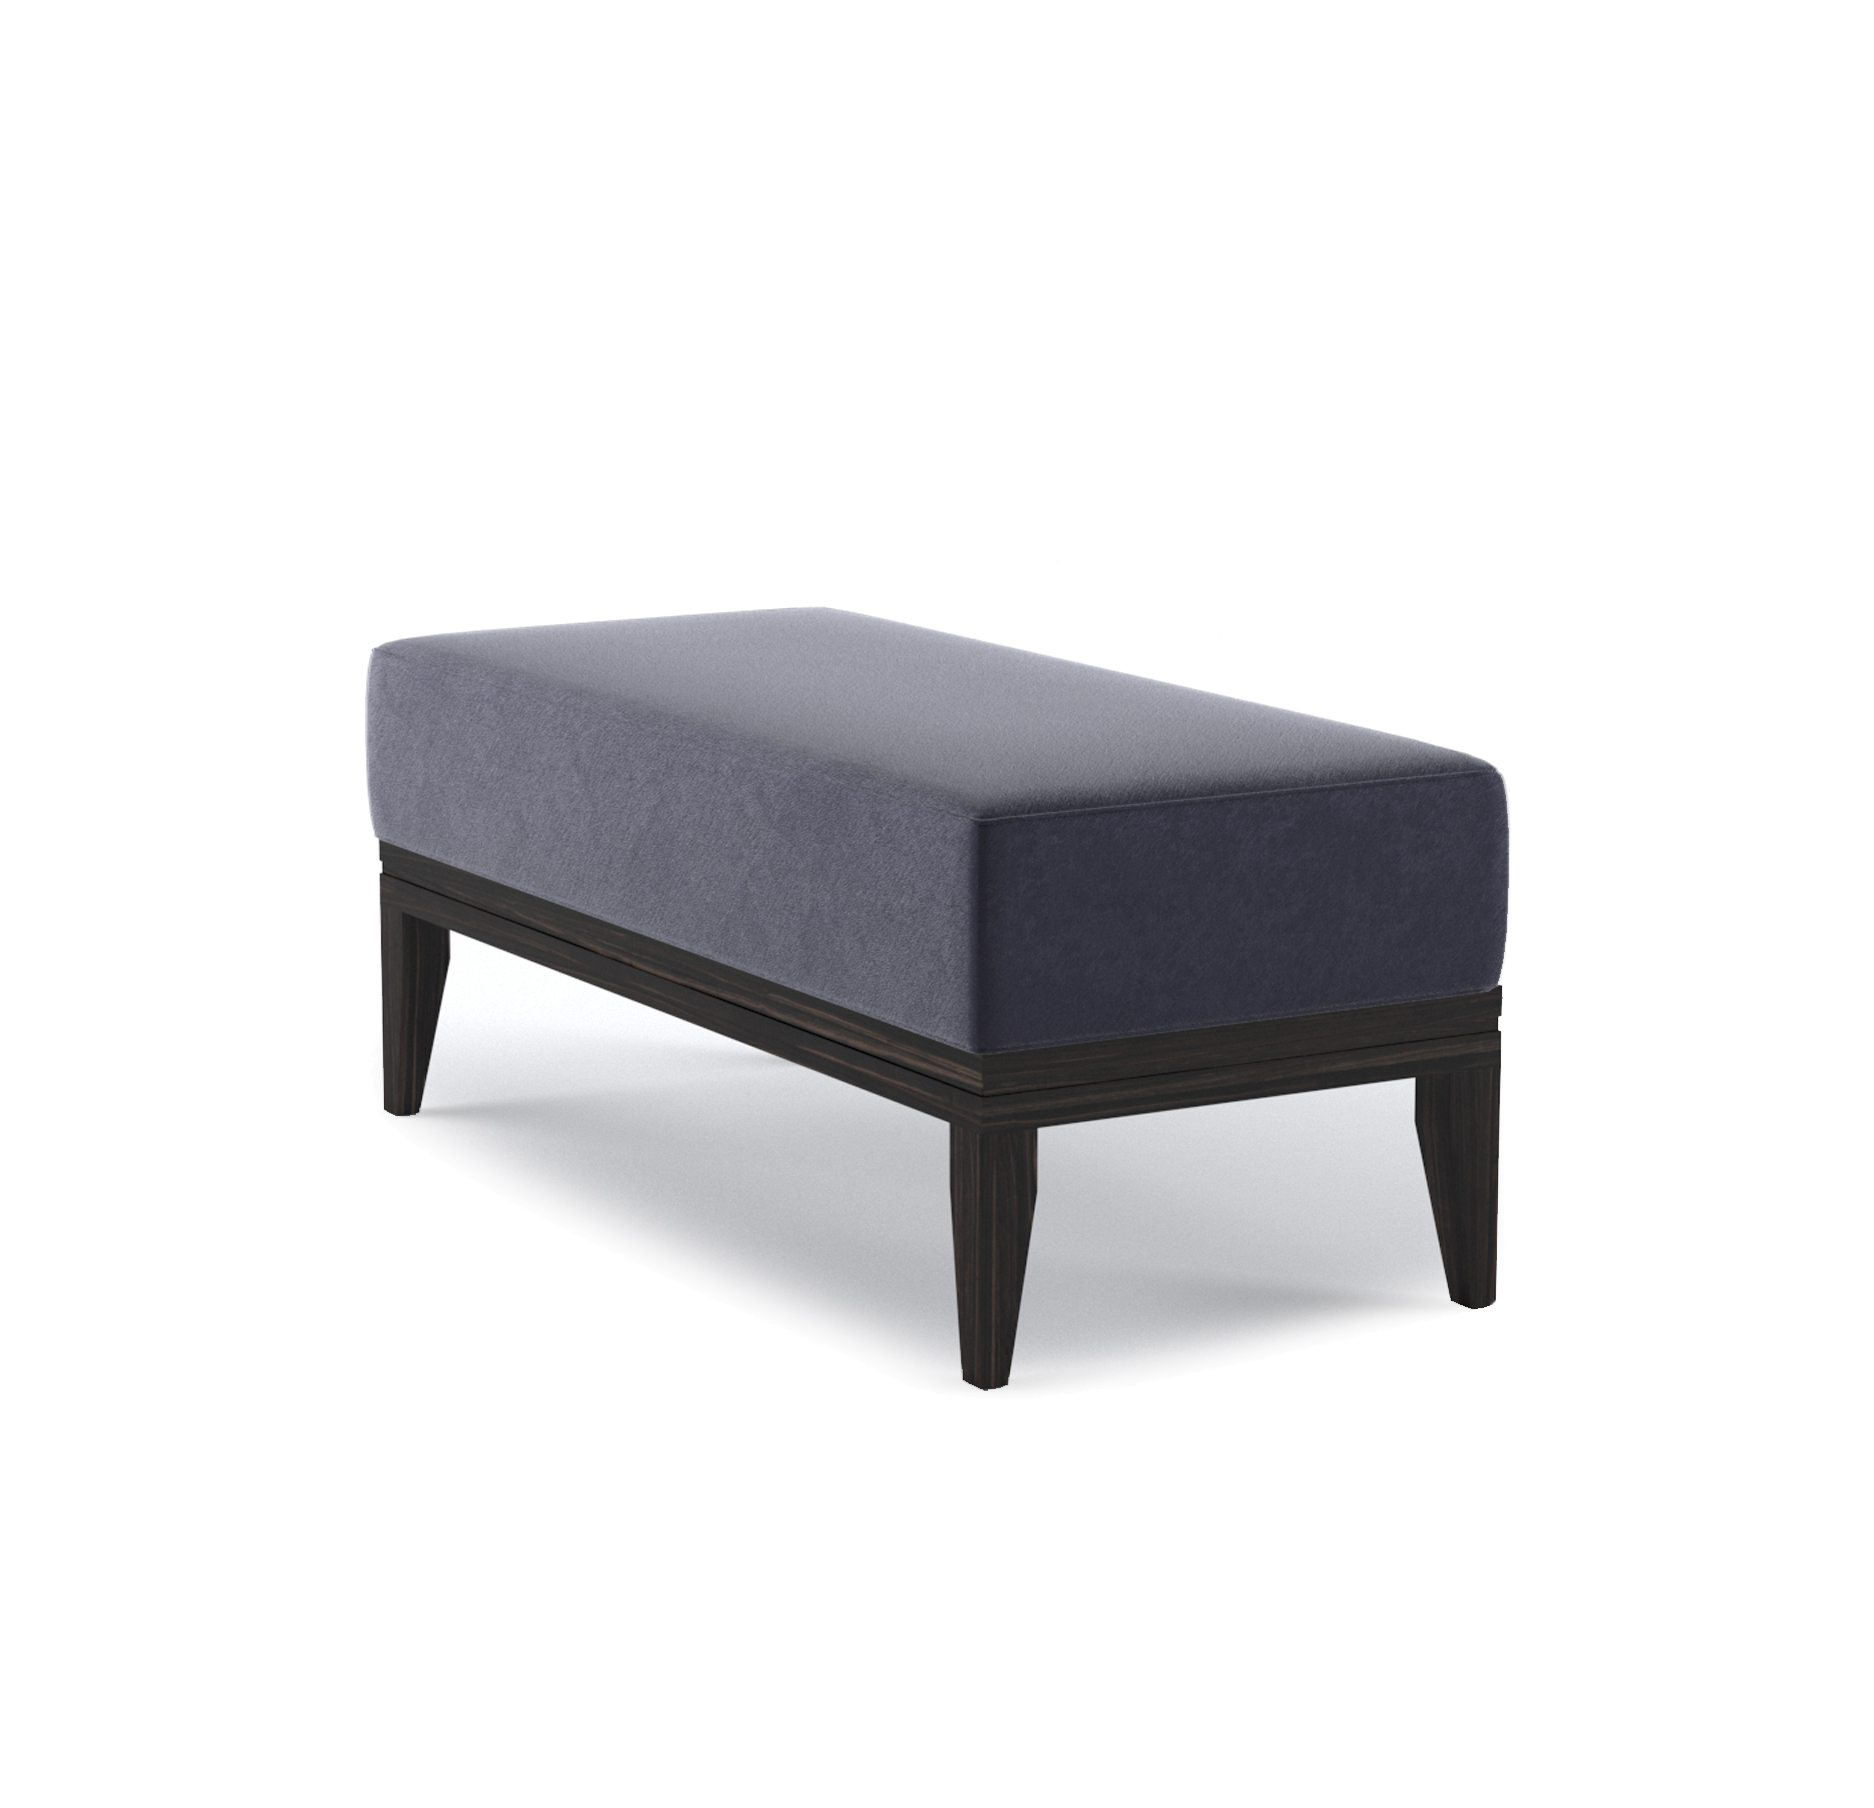 Dumas Bench 02 by Bonham & Bonham 03